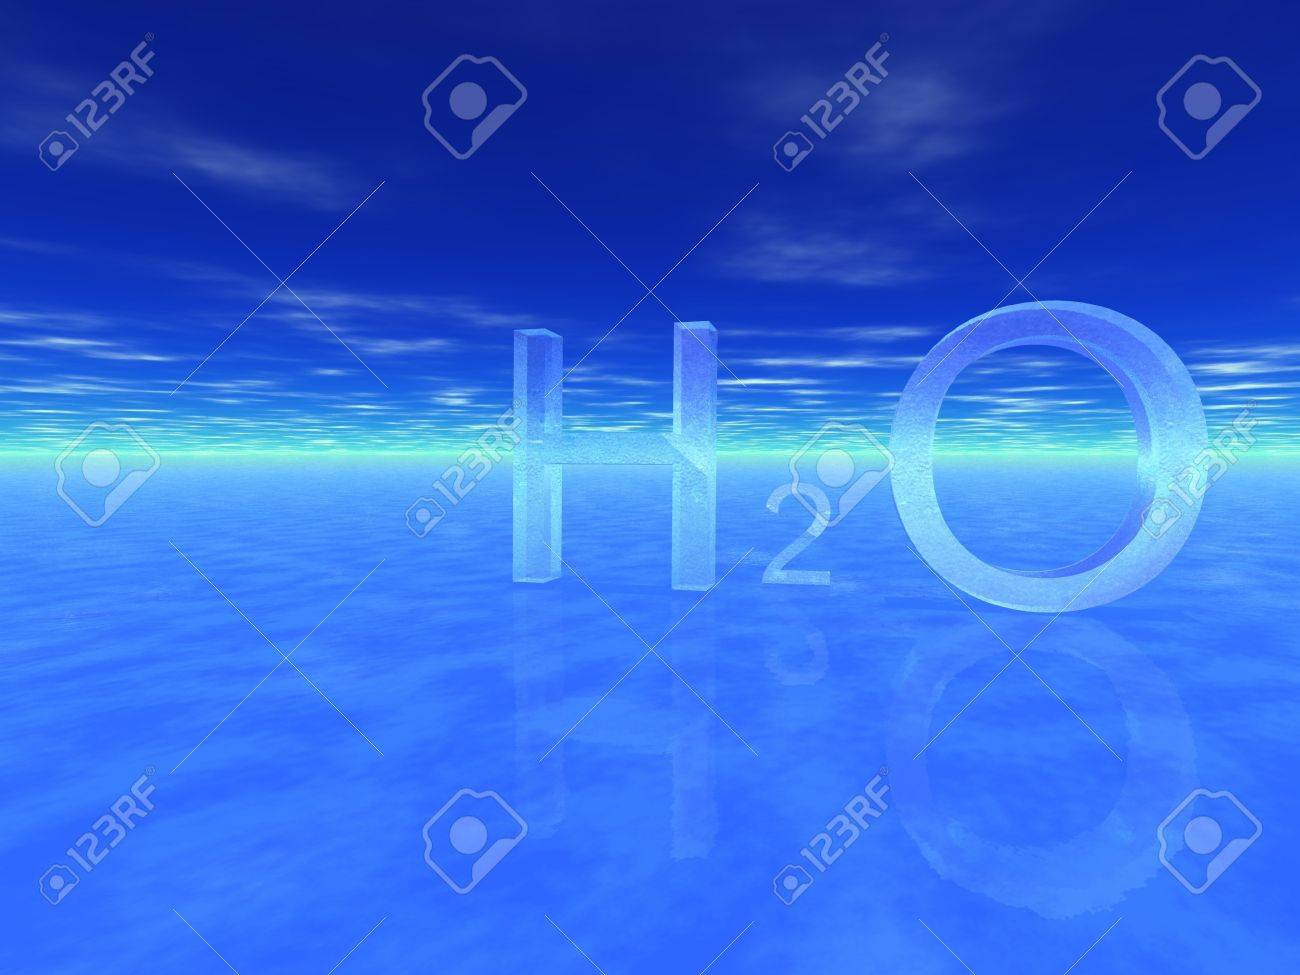 Chemical symbol of water h2o stock photo picture and royalty free chemical symbol of water h2o stock photo 14043130 buycottarizona Choice Image